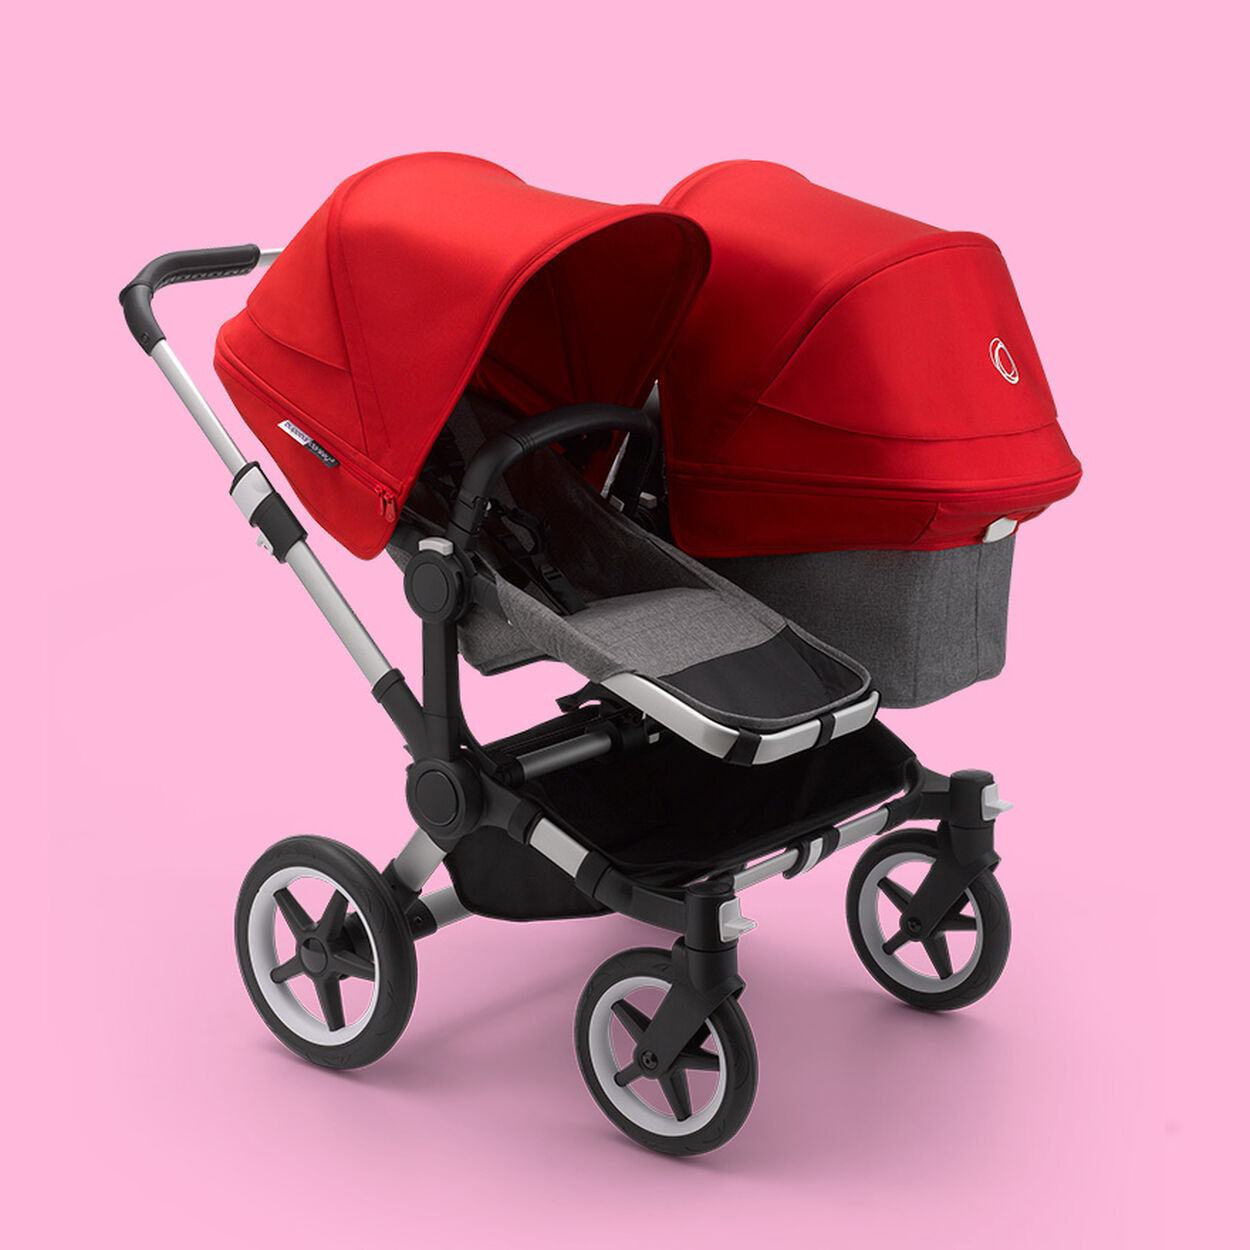 Donkey 3 Twin stroller with seat and bassinet